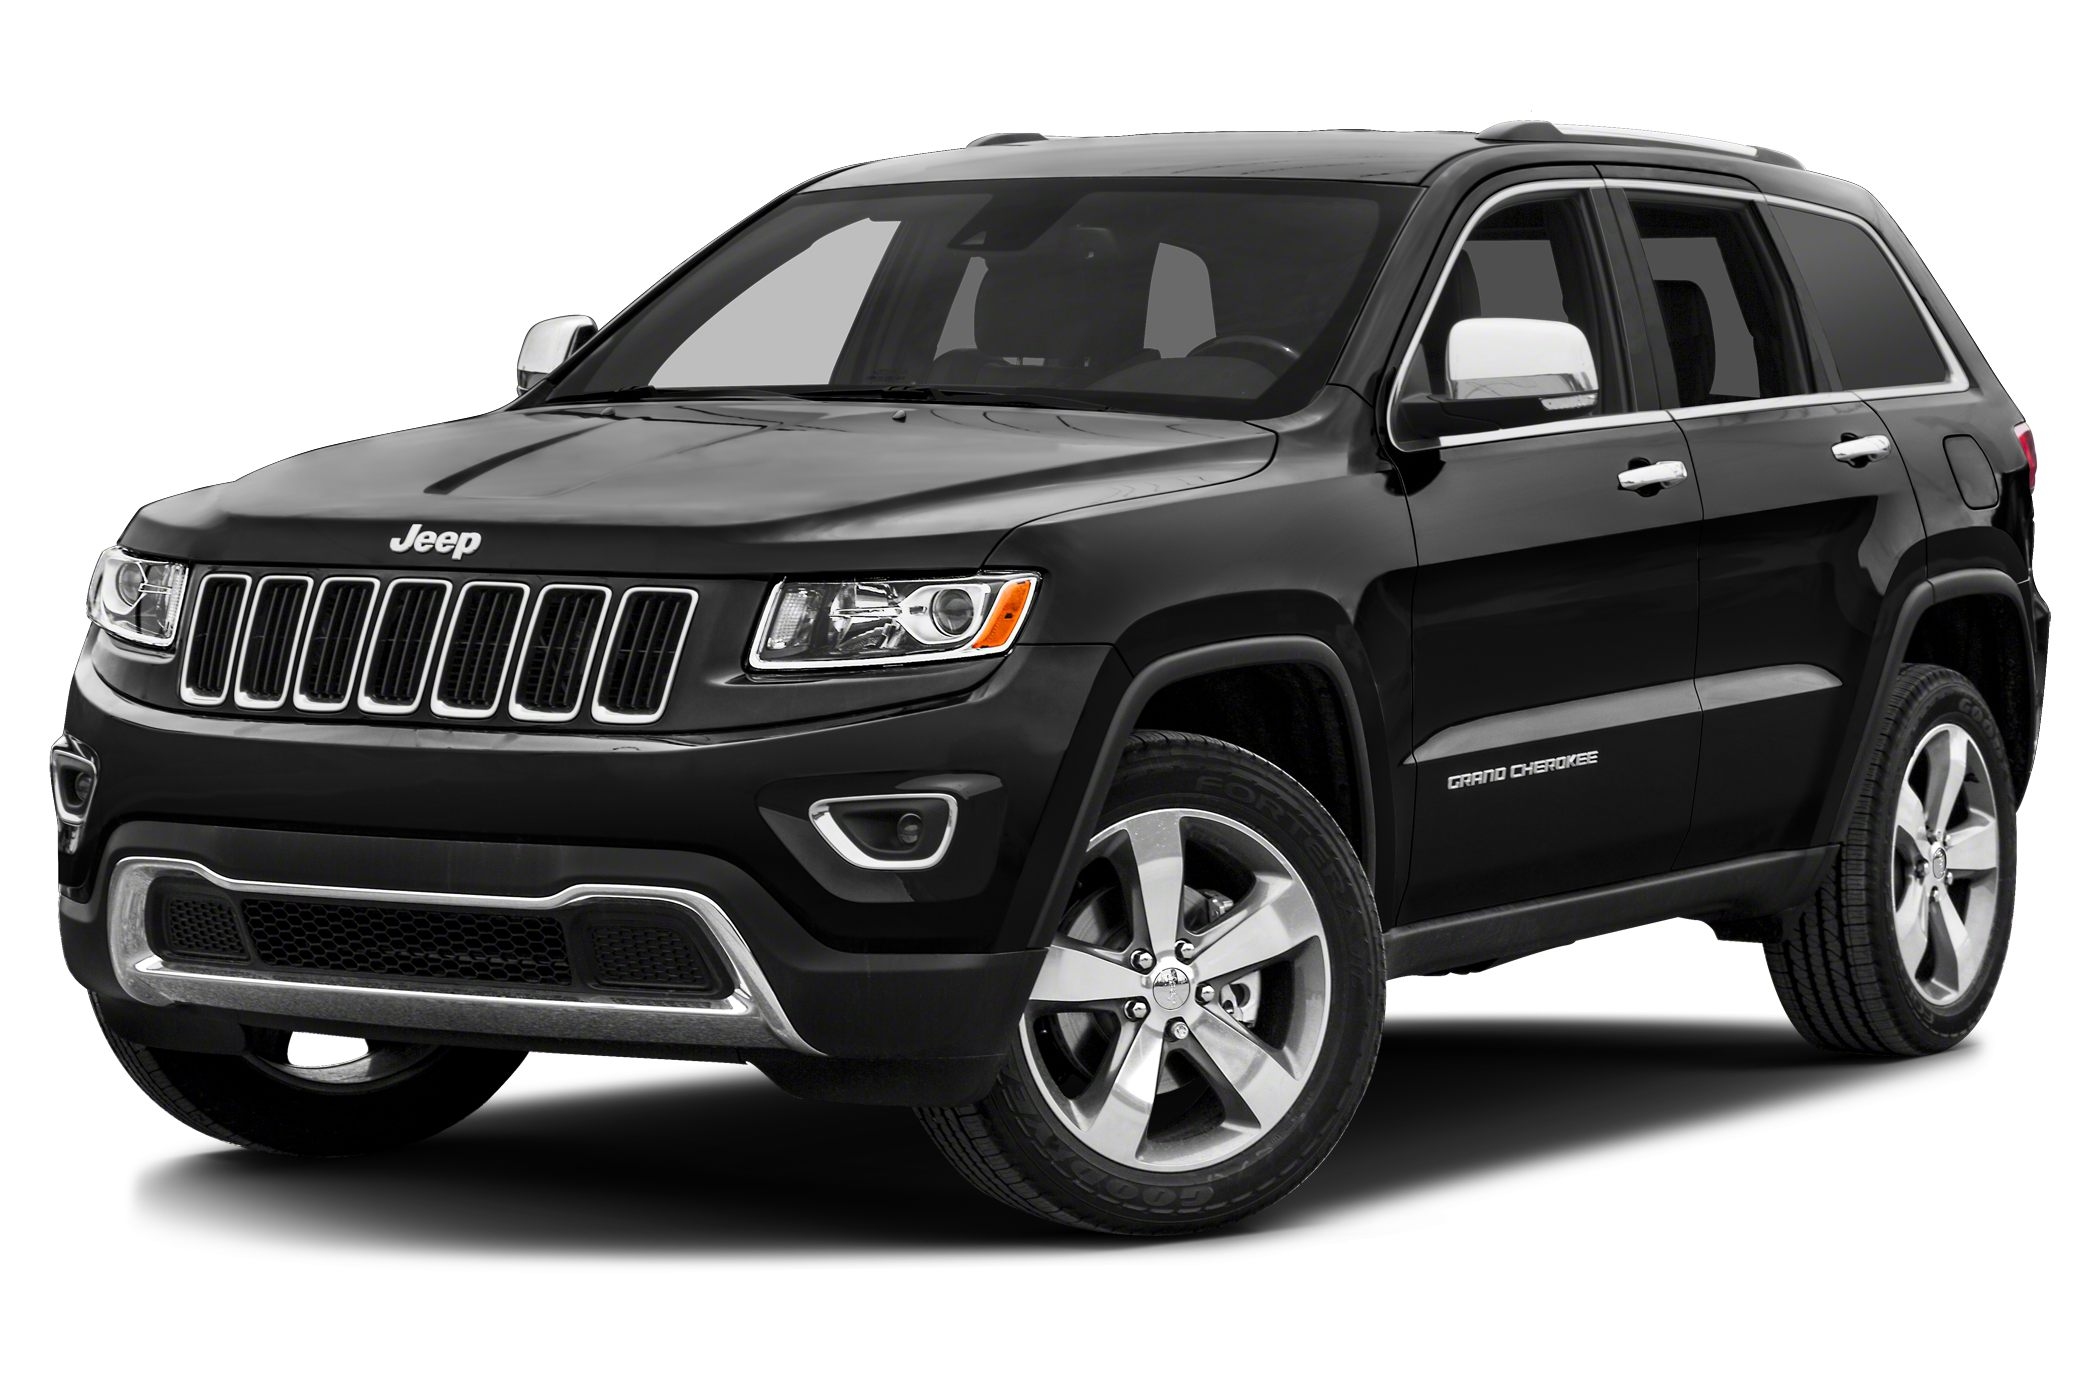 2015 Jeep Grand Cherokee Limited SUV for sale in Waterford for $42,230 with 10 miles.